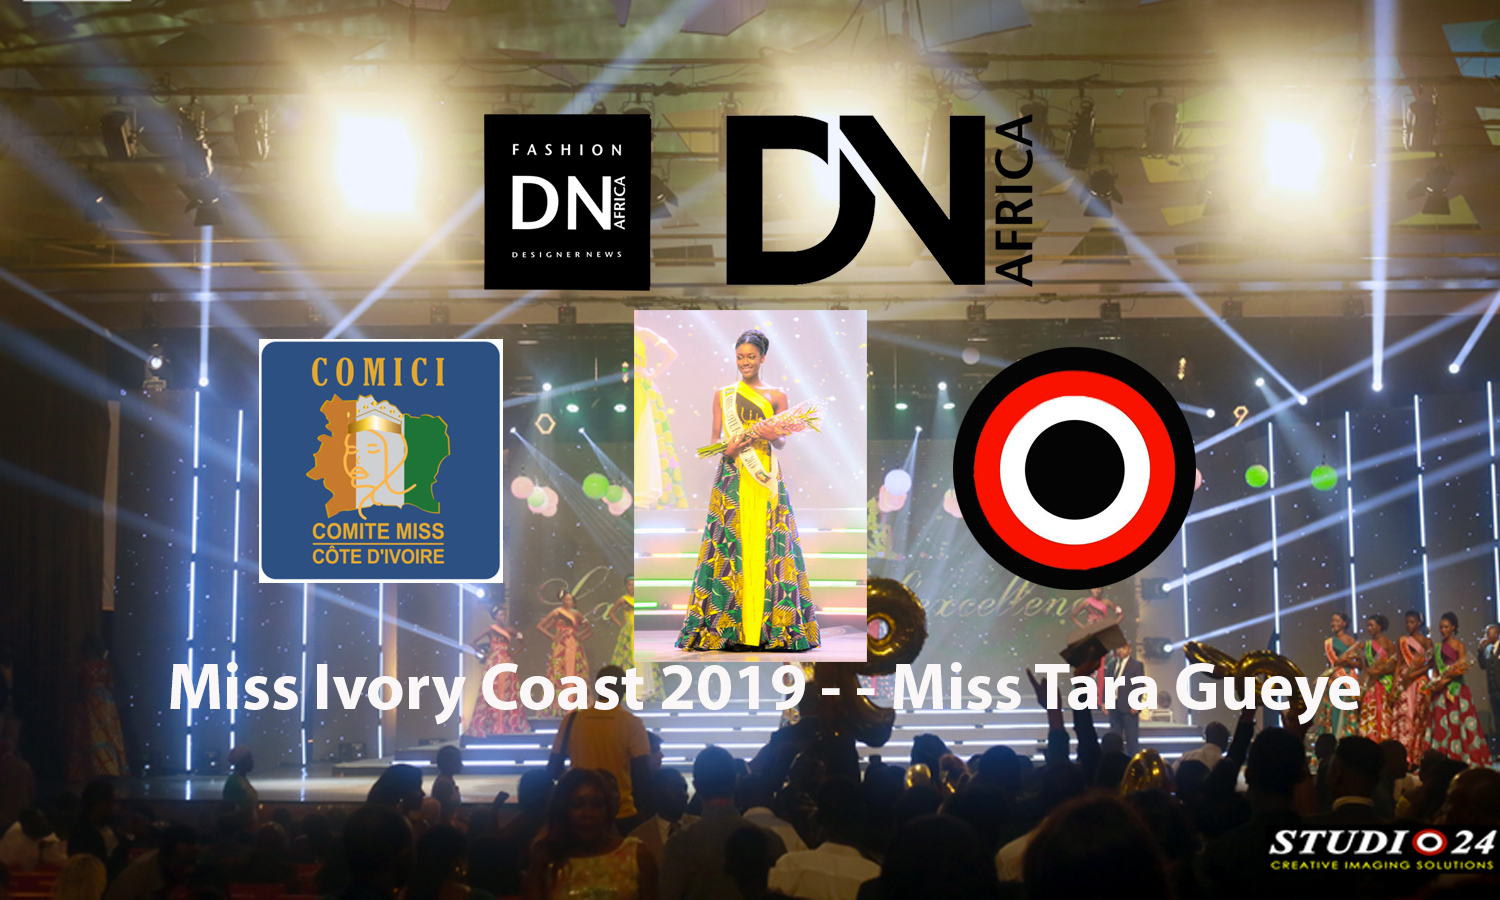 AFRICAN FASHION STYLE MAGAZINE – Miss Ivory Coast 2019 Miss Tara Gueye - Organizer Victor YAPOBI - Photographer DAN NGU - Official Media Partner DN AFRICA - STUDIO 24 NIGERIA - STUDIO 24 INTERNATIONAL - Ifeanyi Christopher Oputa MD AND CEO OF COLVI LIMITED AND STUDIO 24 - CHEVEUX CHERIE and CHEVEUX CHERIE STUDIO BY MARIEME DUBOZ- Fashion Editor Nahomie NOOR COULIBALY